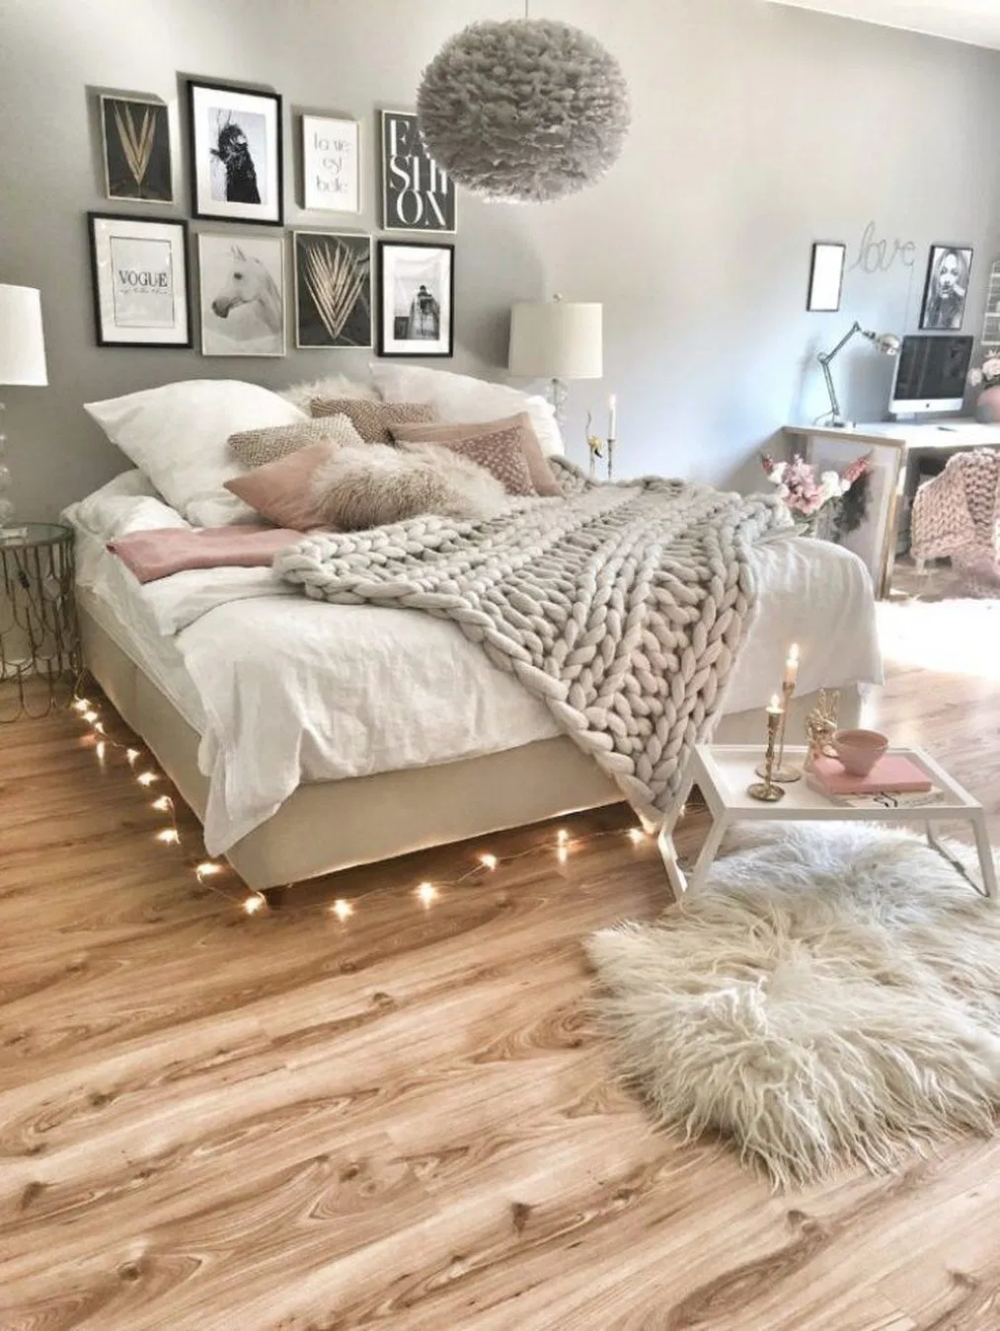 37 five elegant rustic bedroom ideas that will give your ...